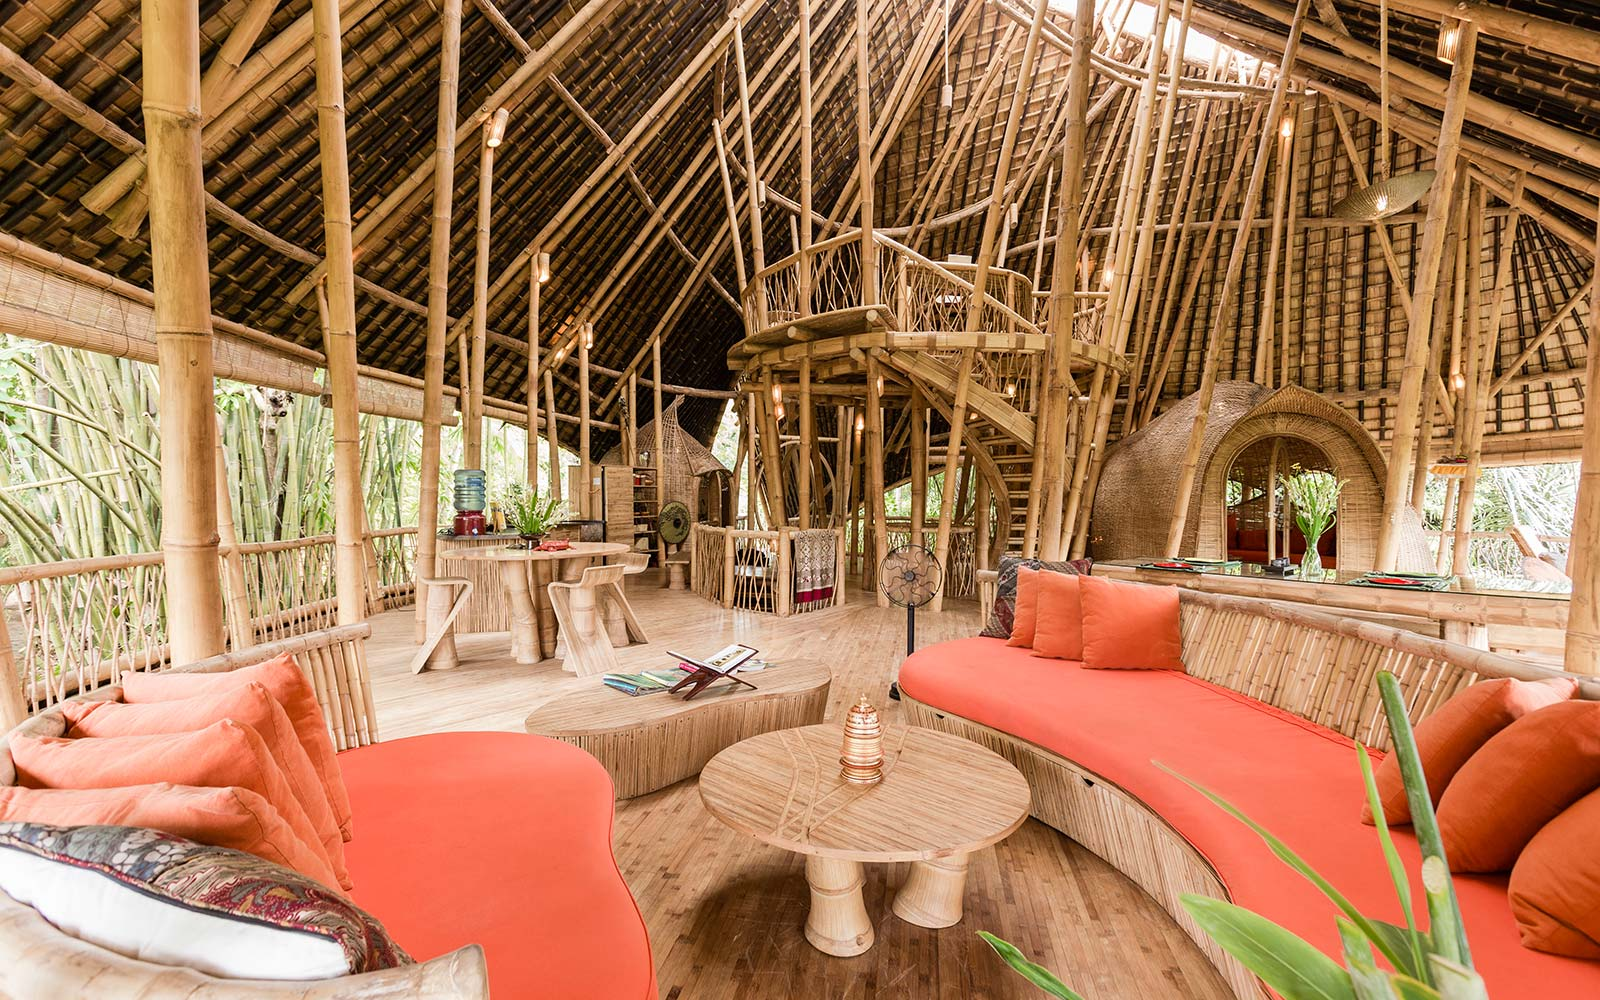 bali indonesia bamboo suite airbnb rental